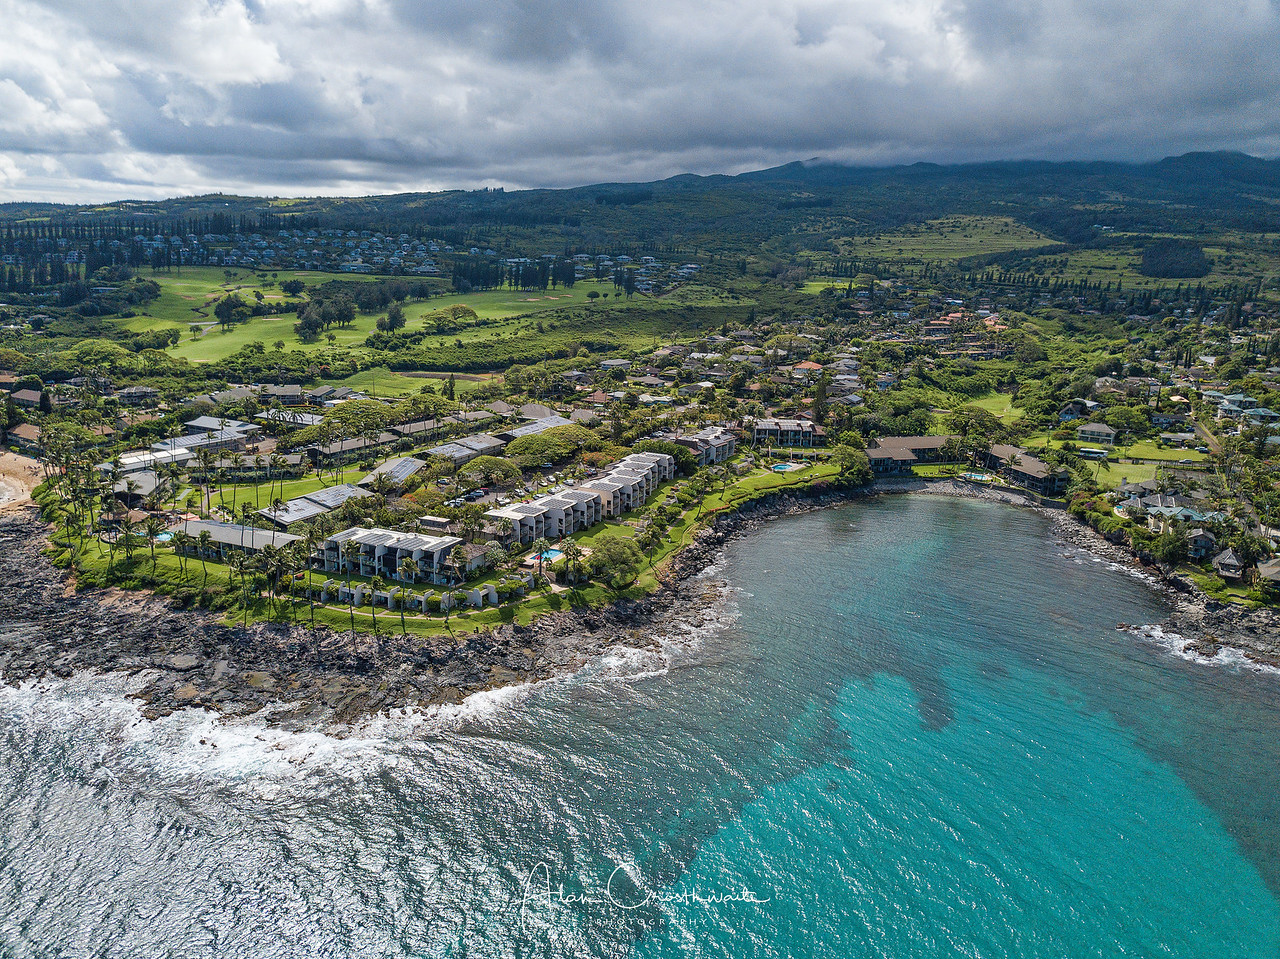 Honokeana Bay, Maui, Hawaii